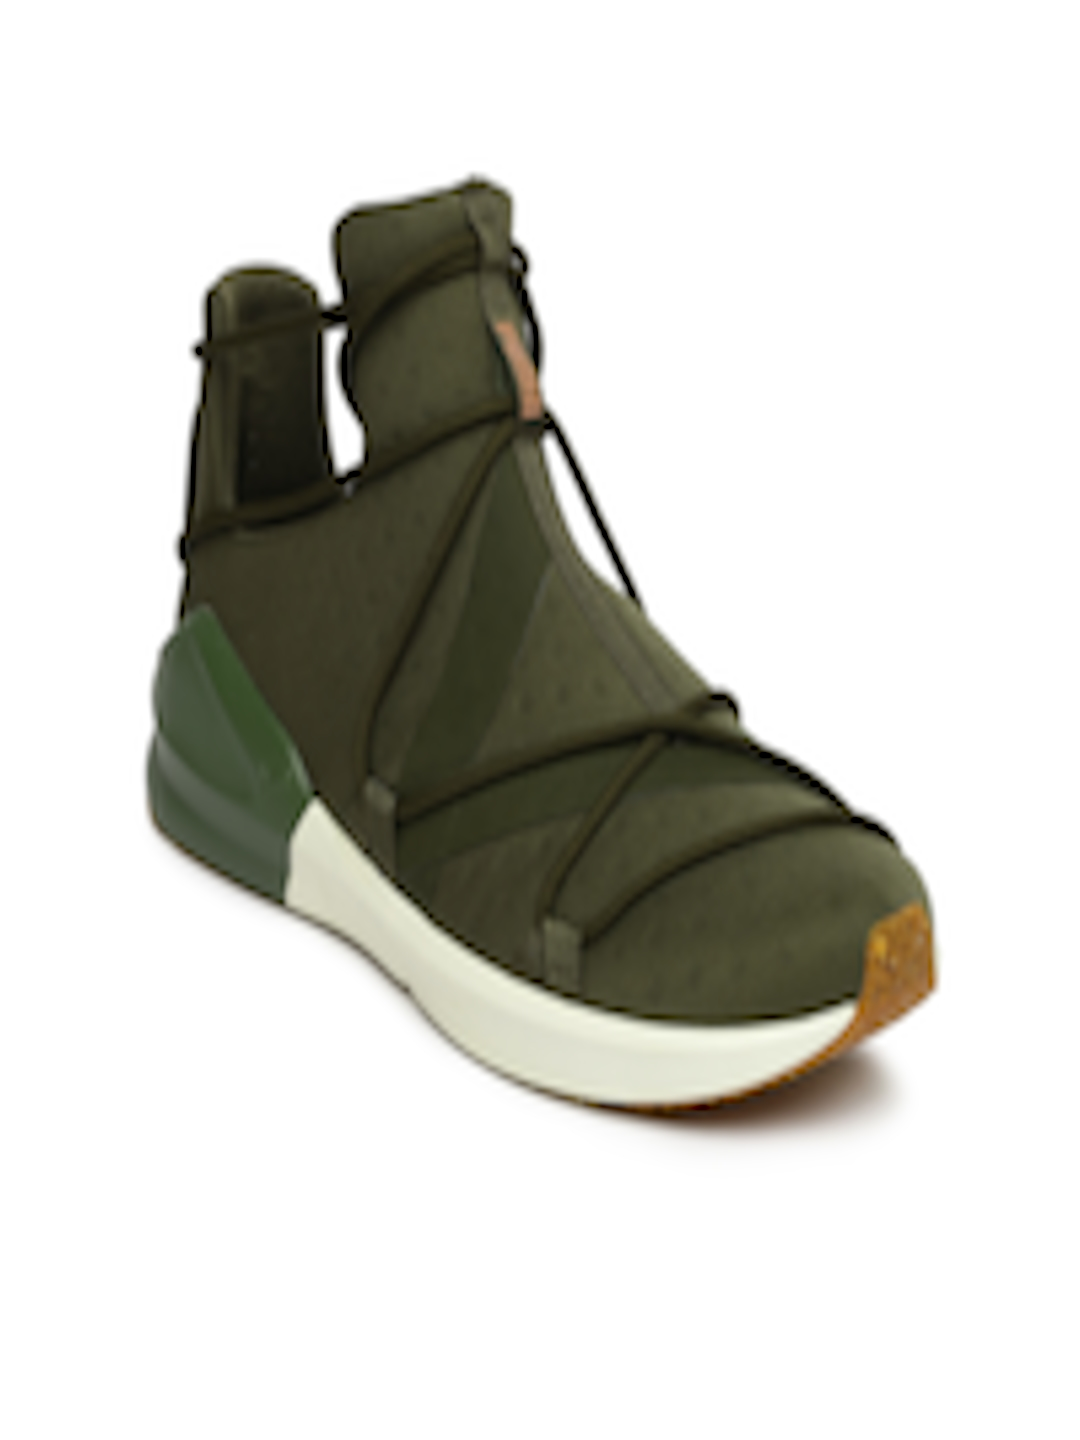 new style 364b3 dcce7 Buy Puma Women Olive Green Fierce Rope VR Training Shoes - Sports Shoes for  Women 2246947 | Myntra